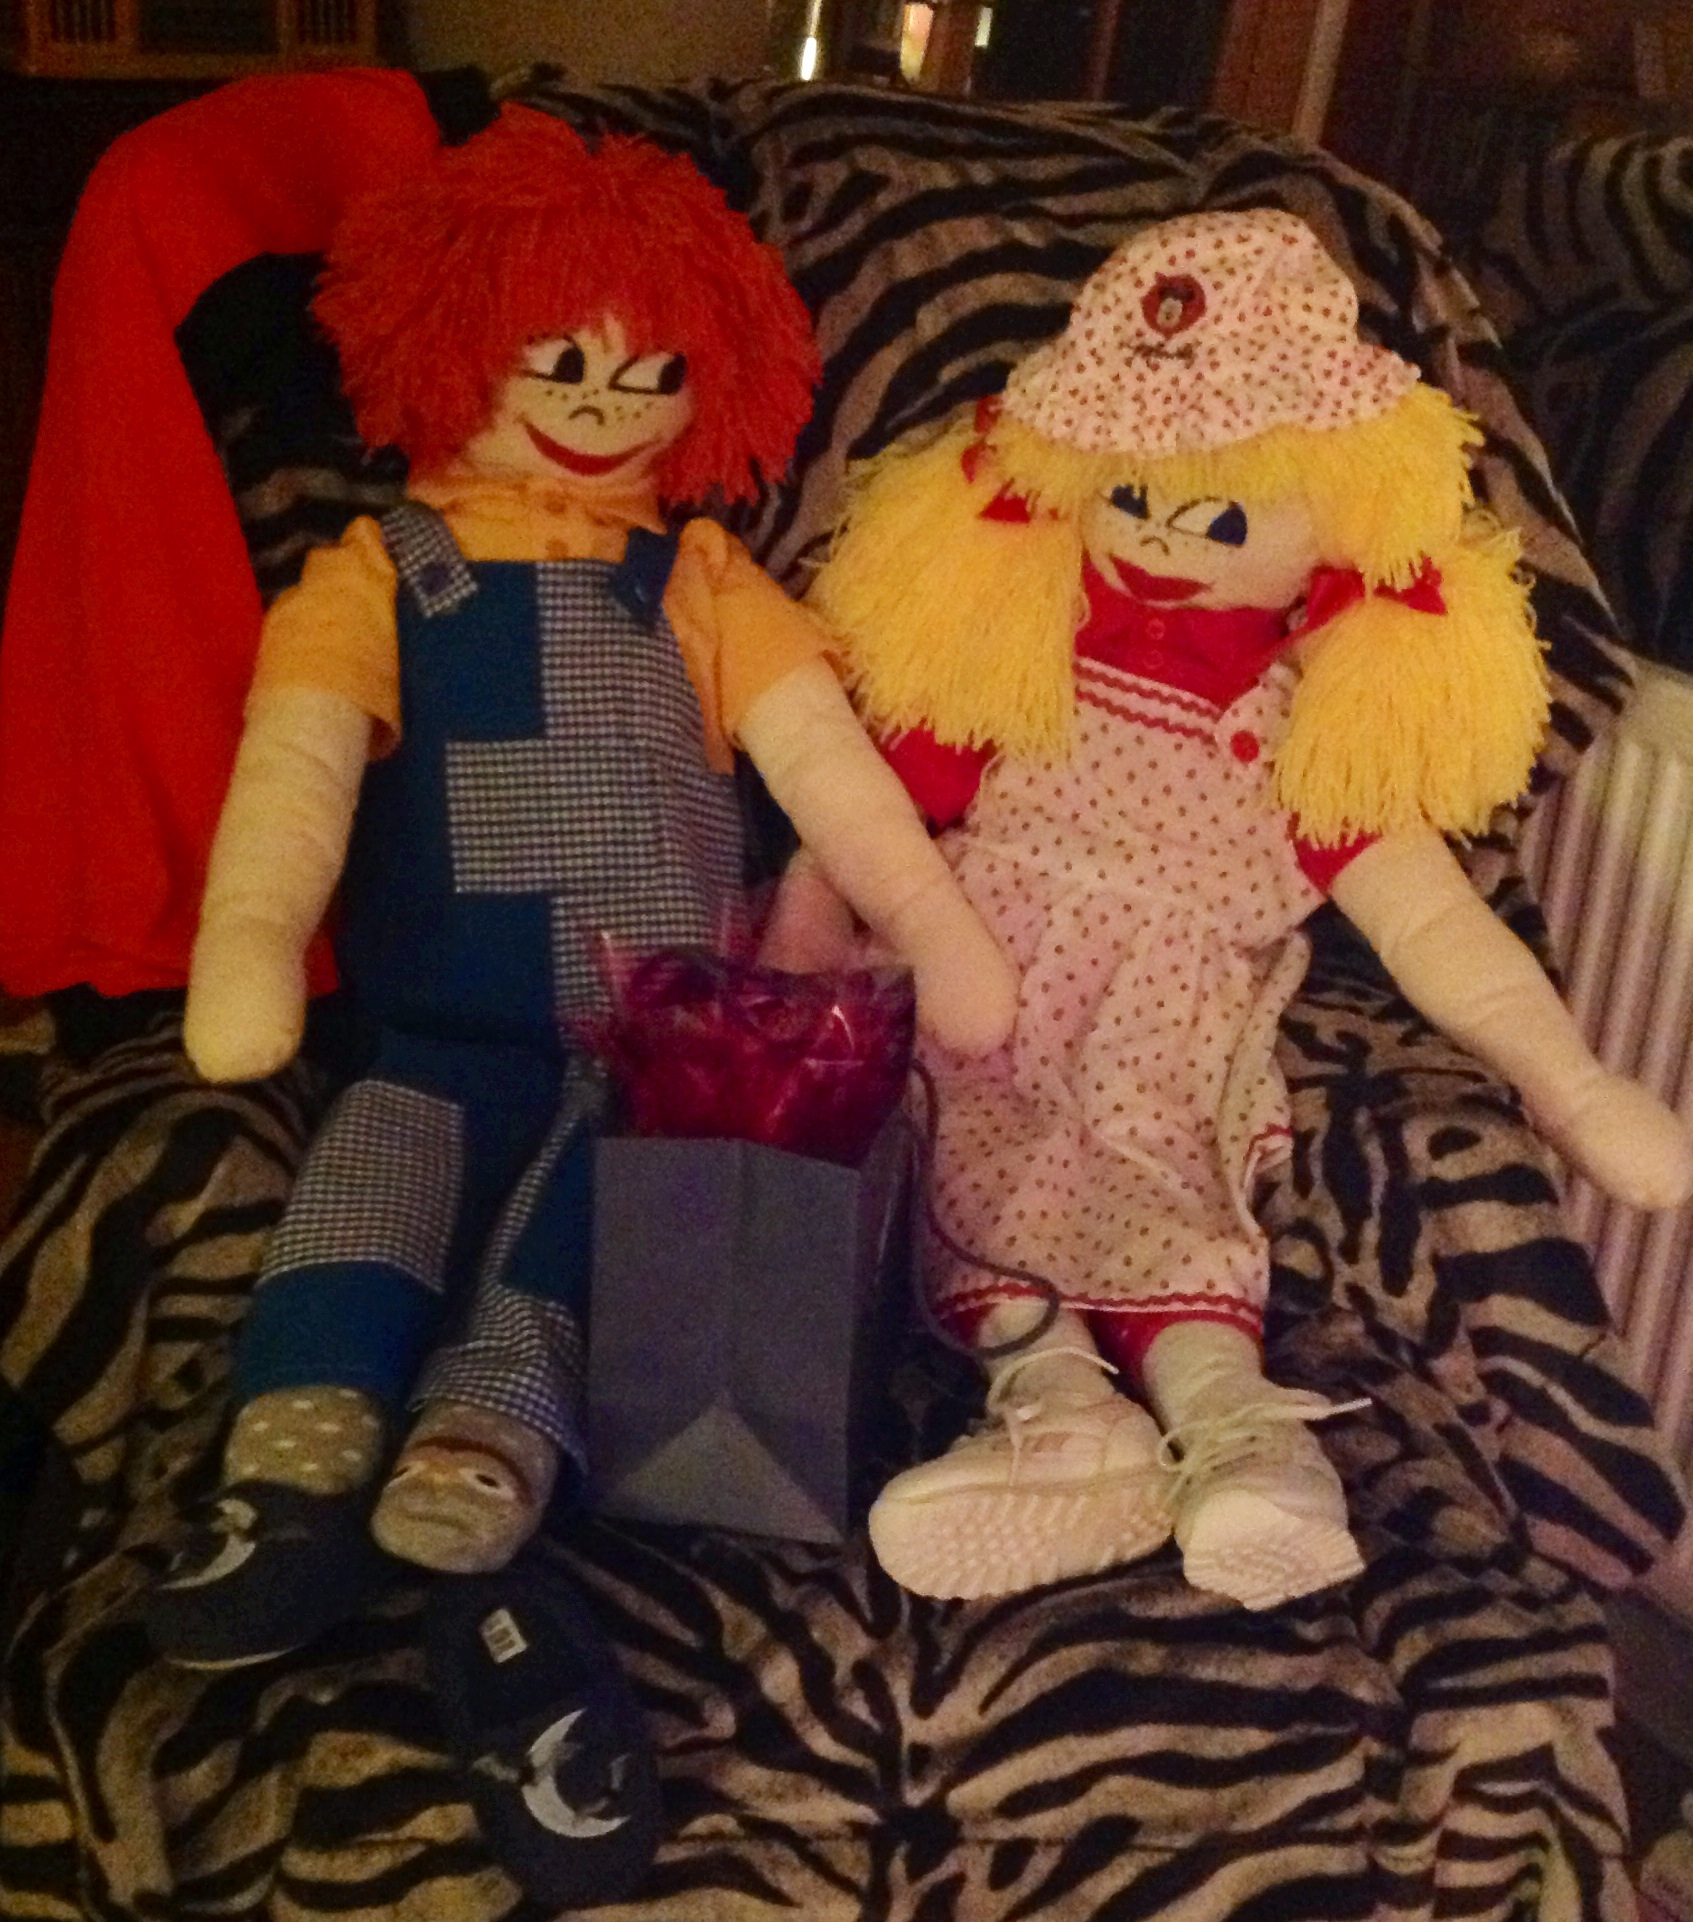 Lovely rags dolls made and donated by resident. For our Christmas Raffle.